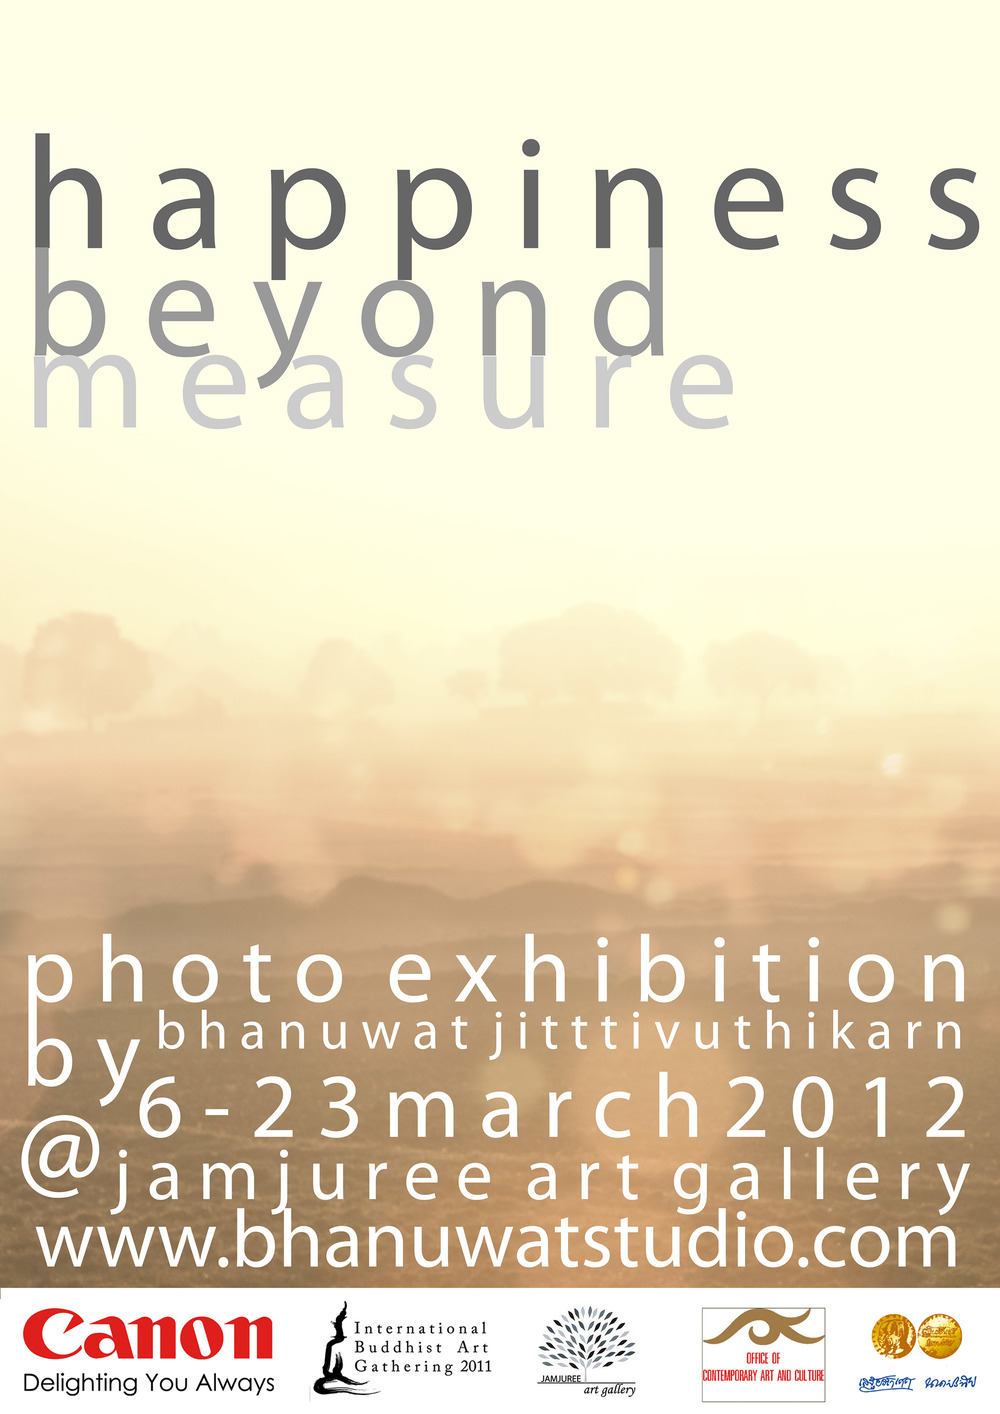 HAPPINESS BEYOND MEASURE 6-23 march 2012, Jamjuree Art Gallery , ChulalongkornUniversity , Bangkok Thailand